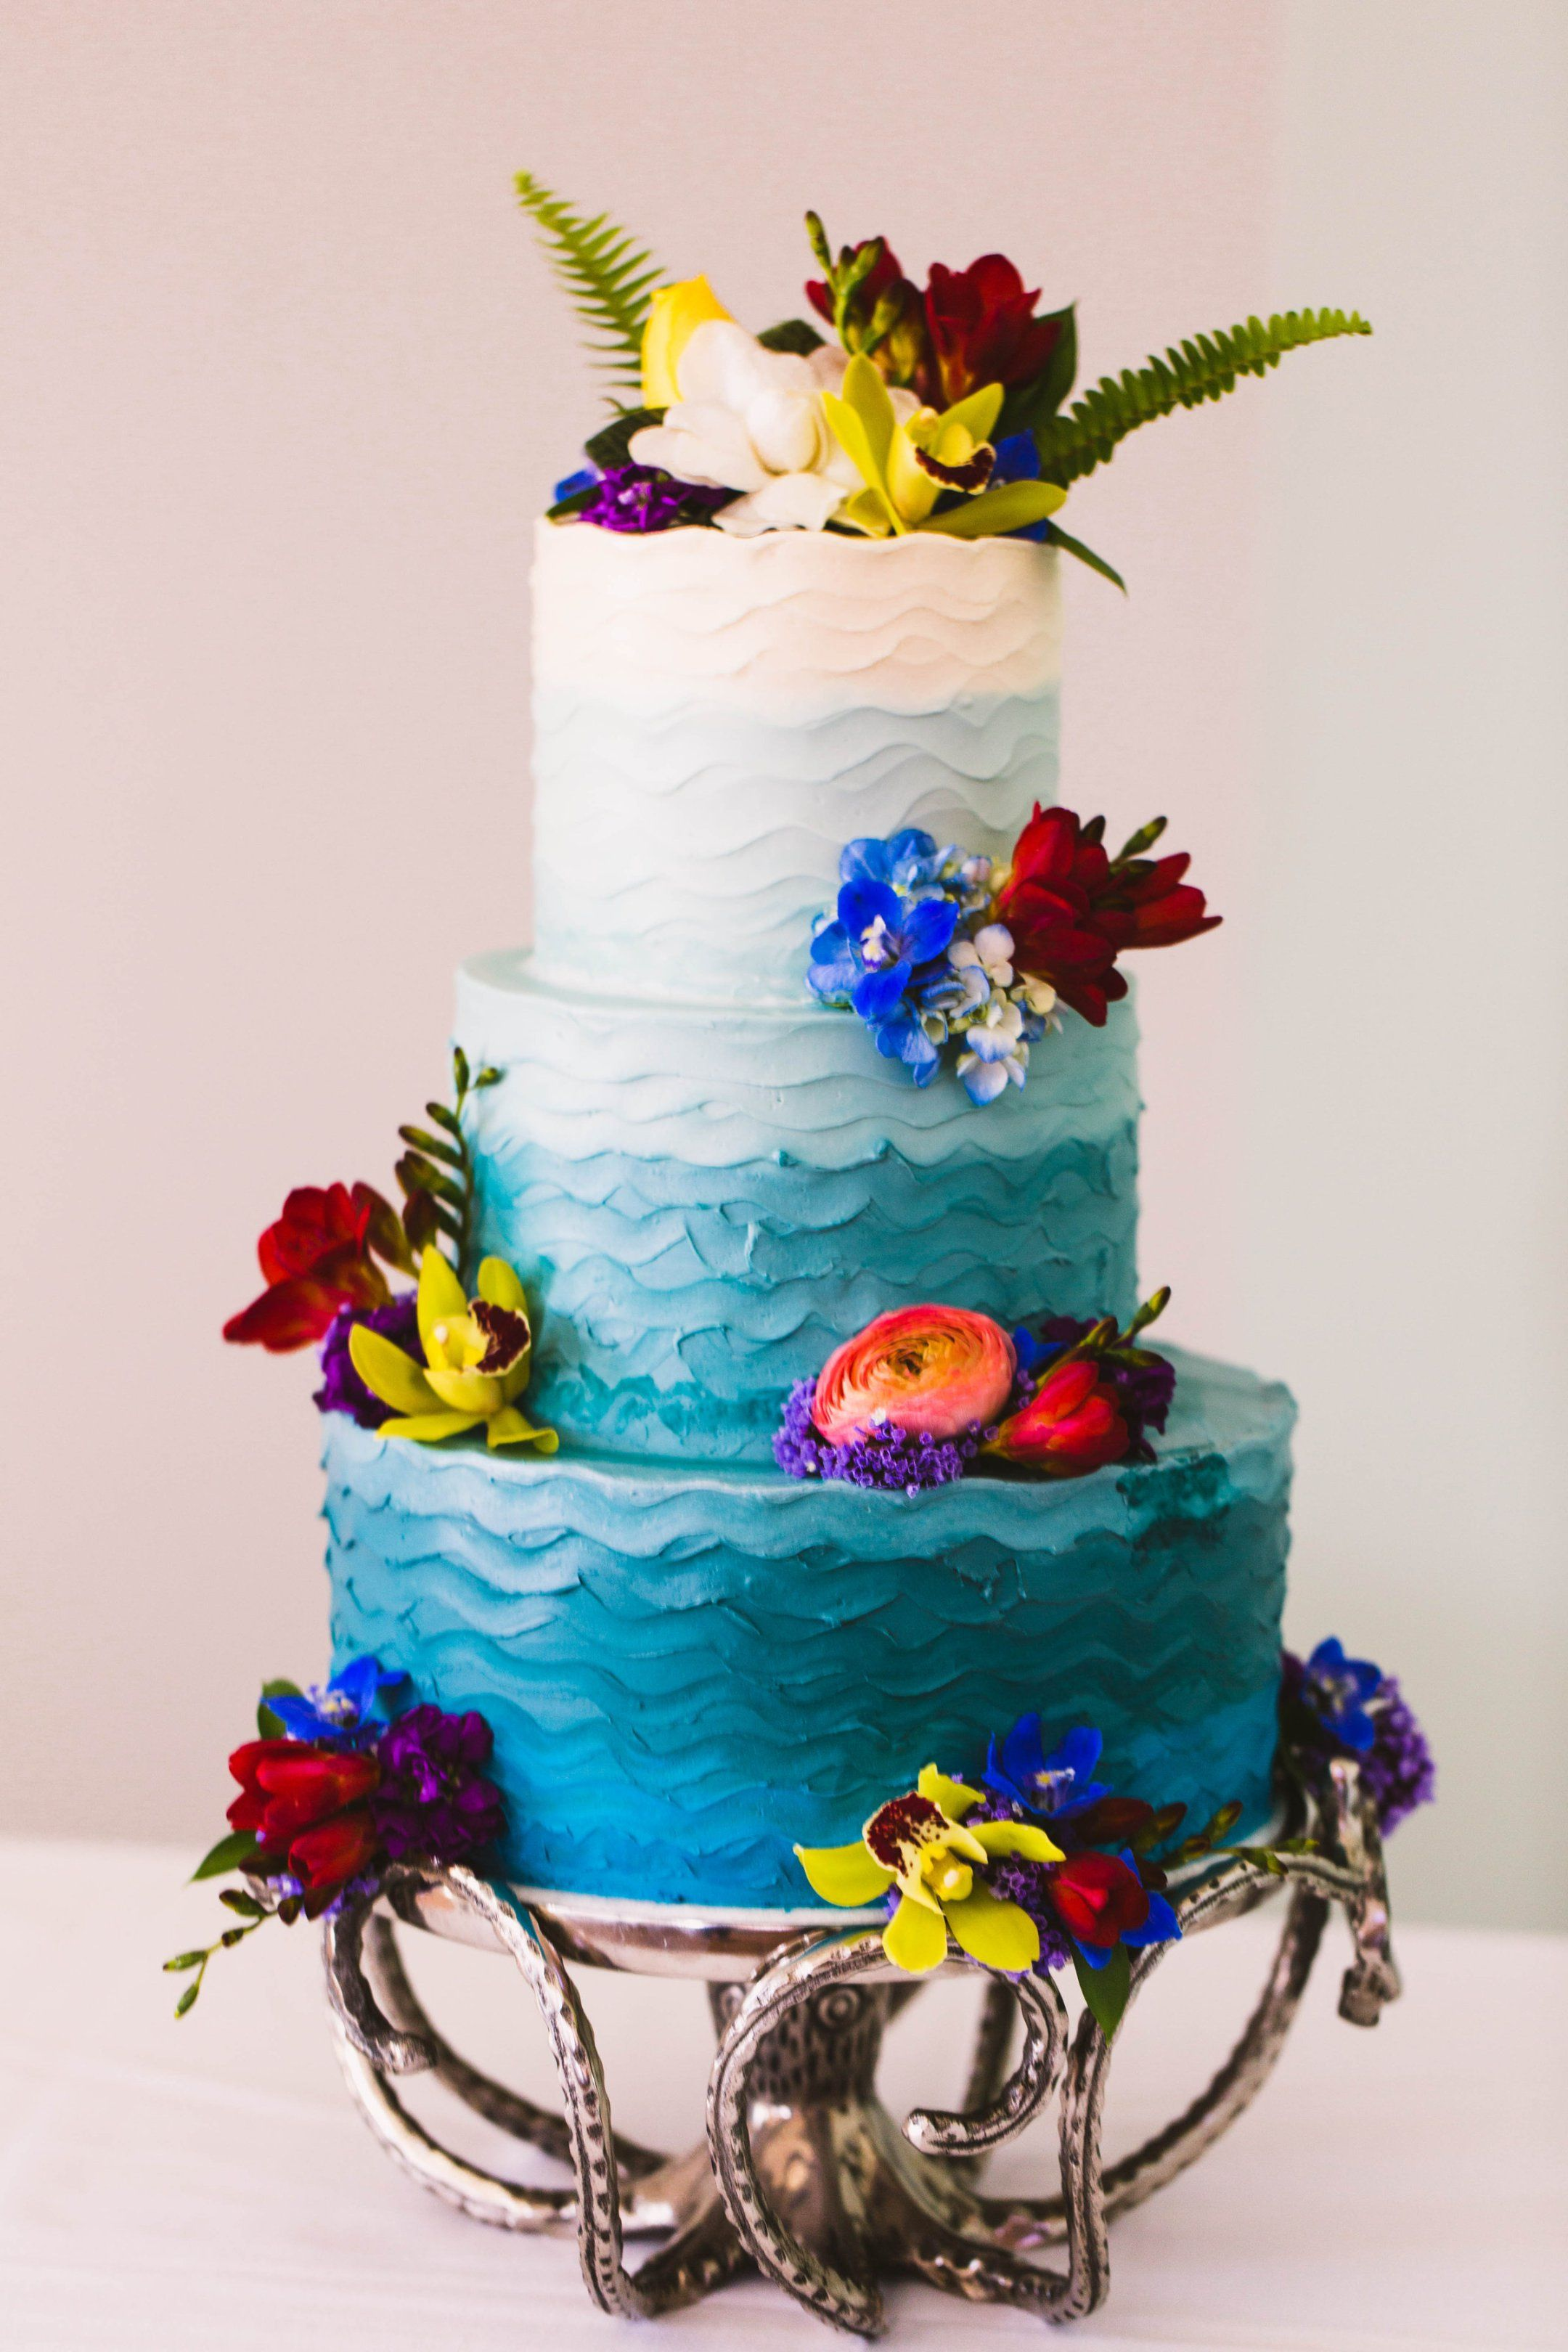 3 Tier Blue Onbre Cake With Bright Flowers By Nicole Bakes Cakes, Los  Angeles, CA. Wedding Planner: Moxie Bright Events